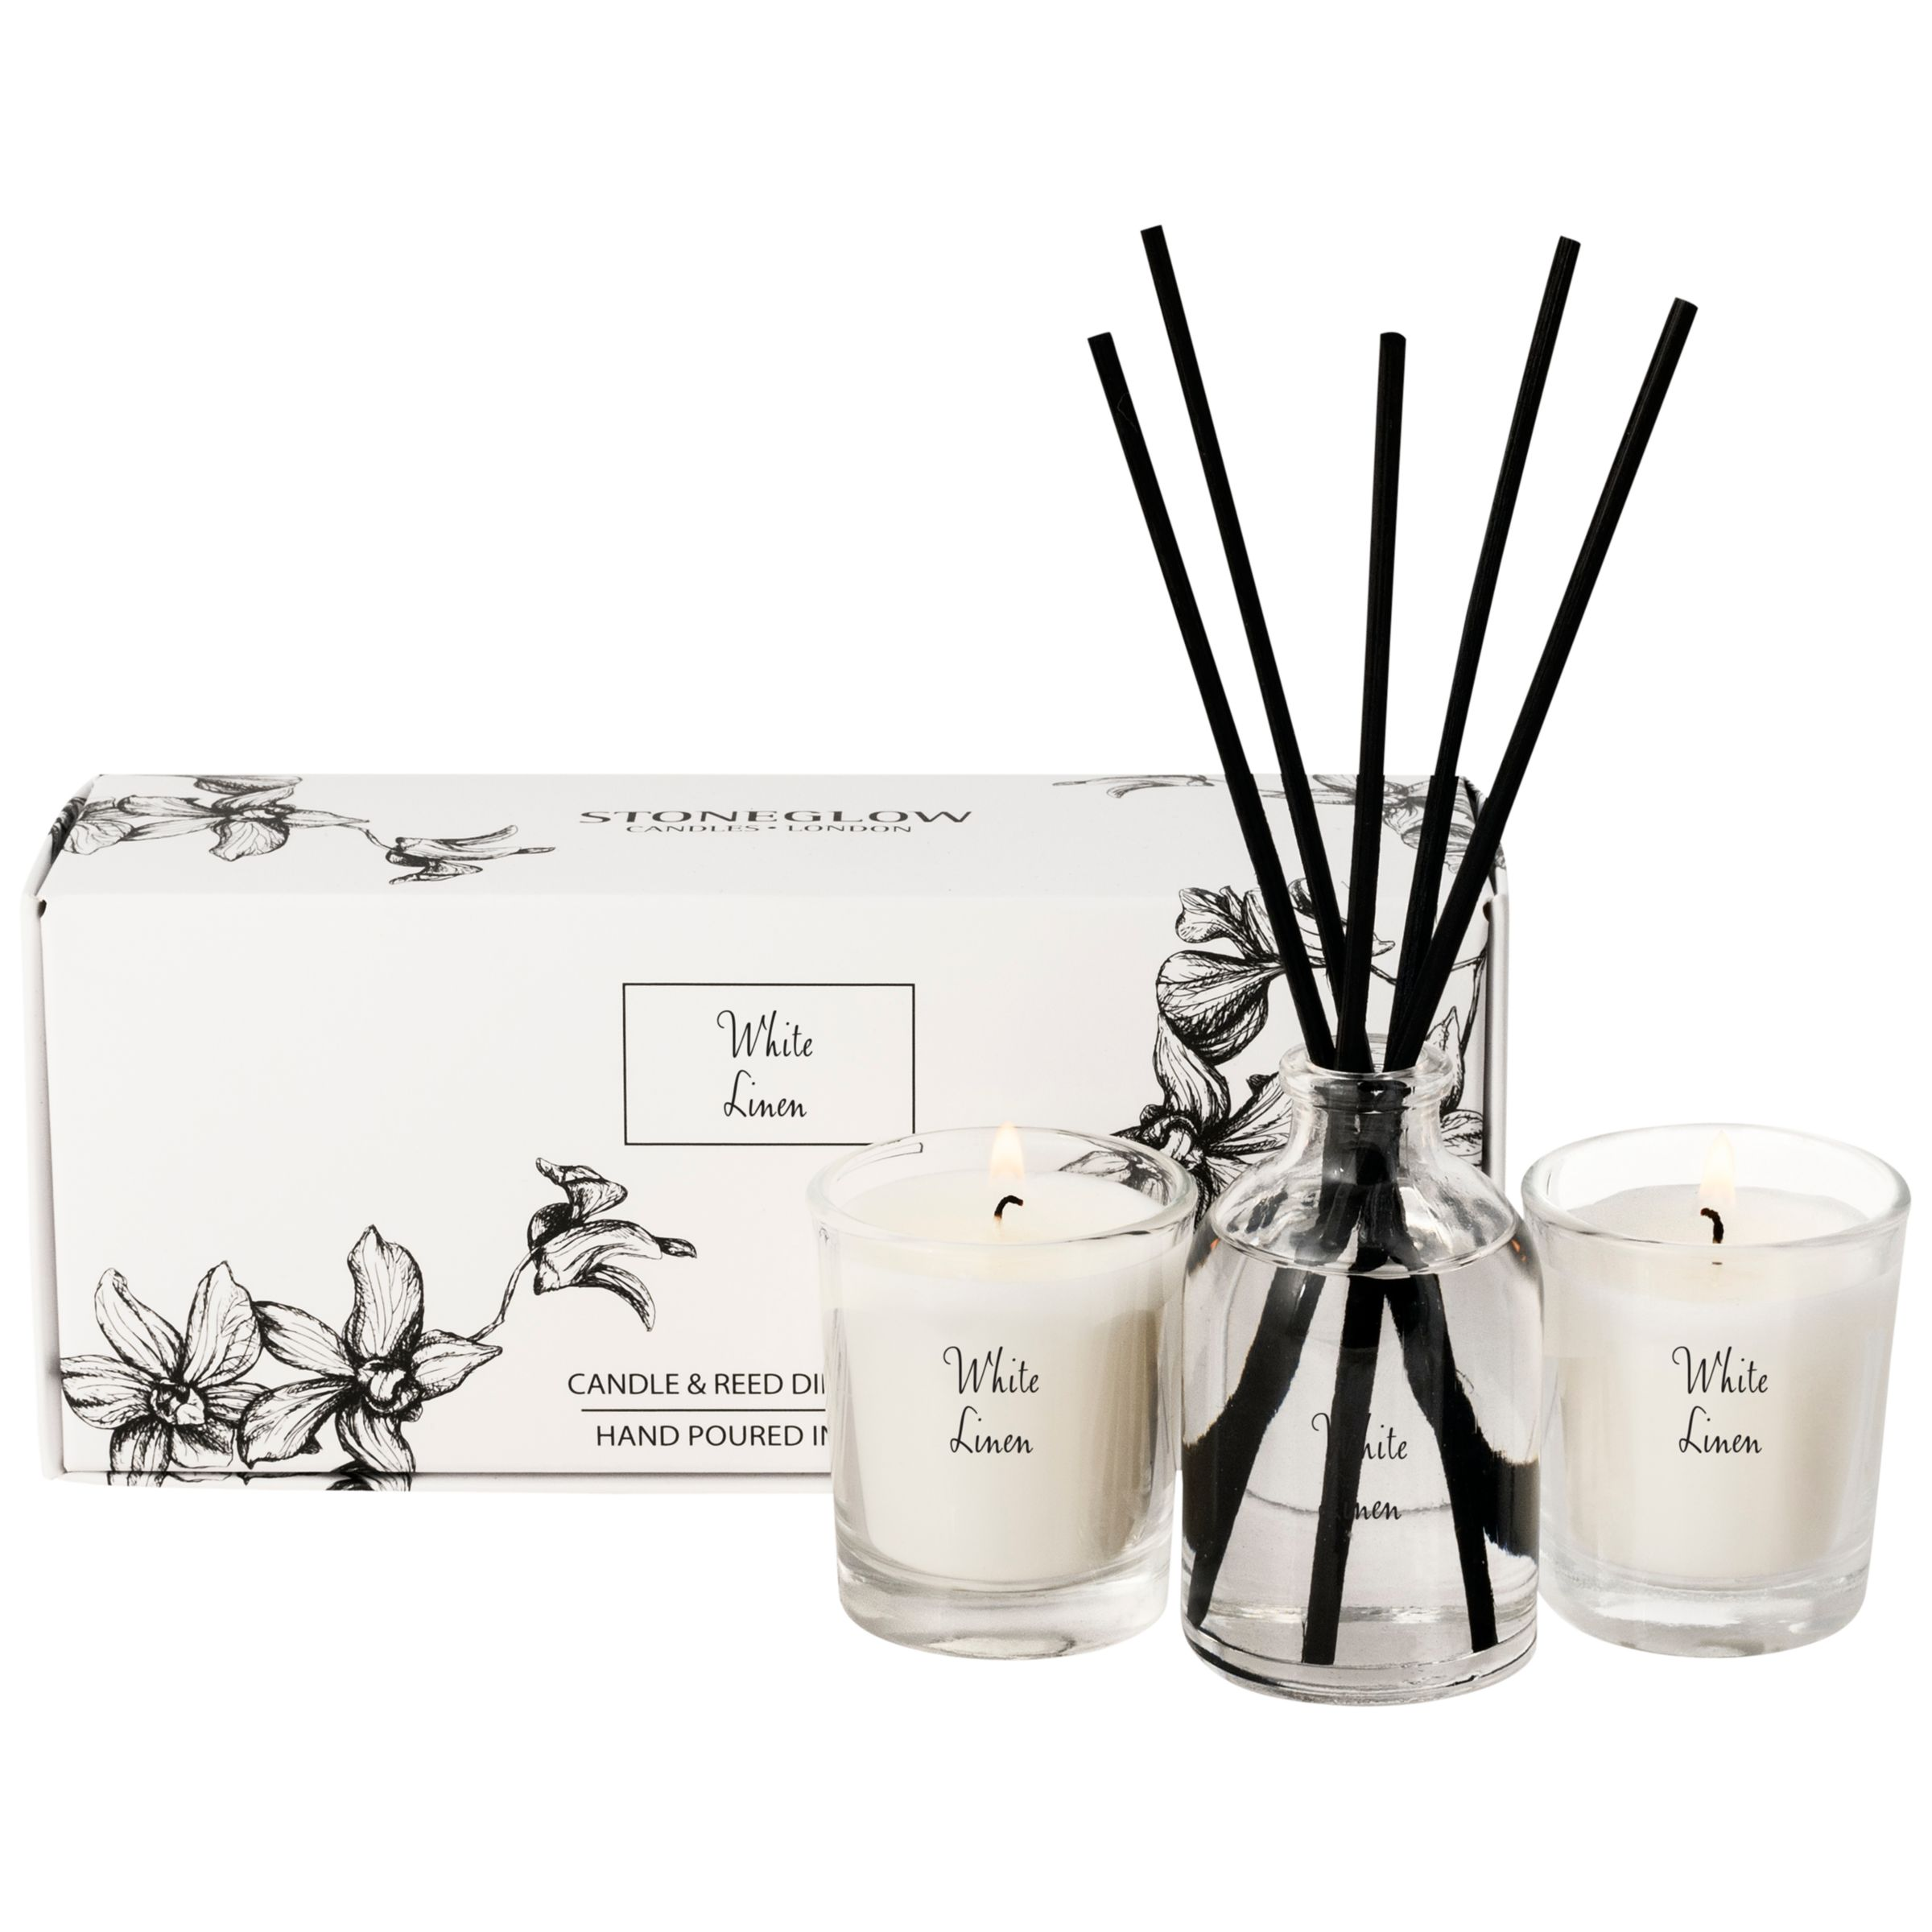 Stoneglow Stoneglow Scented Candles and Diffuser Gift Set, New White Linen